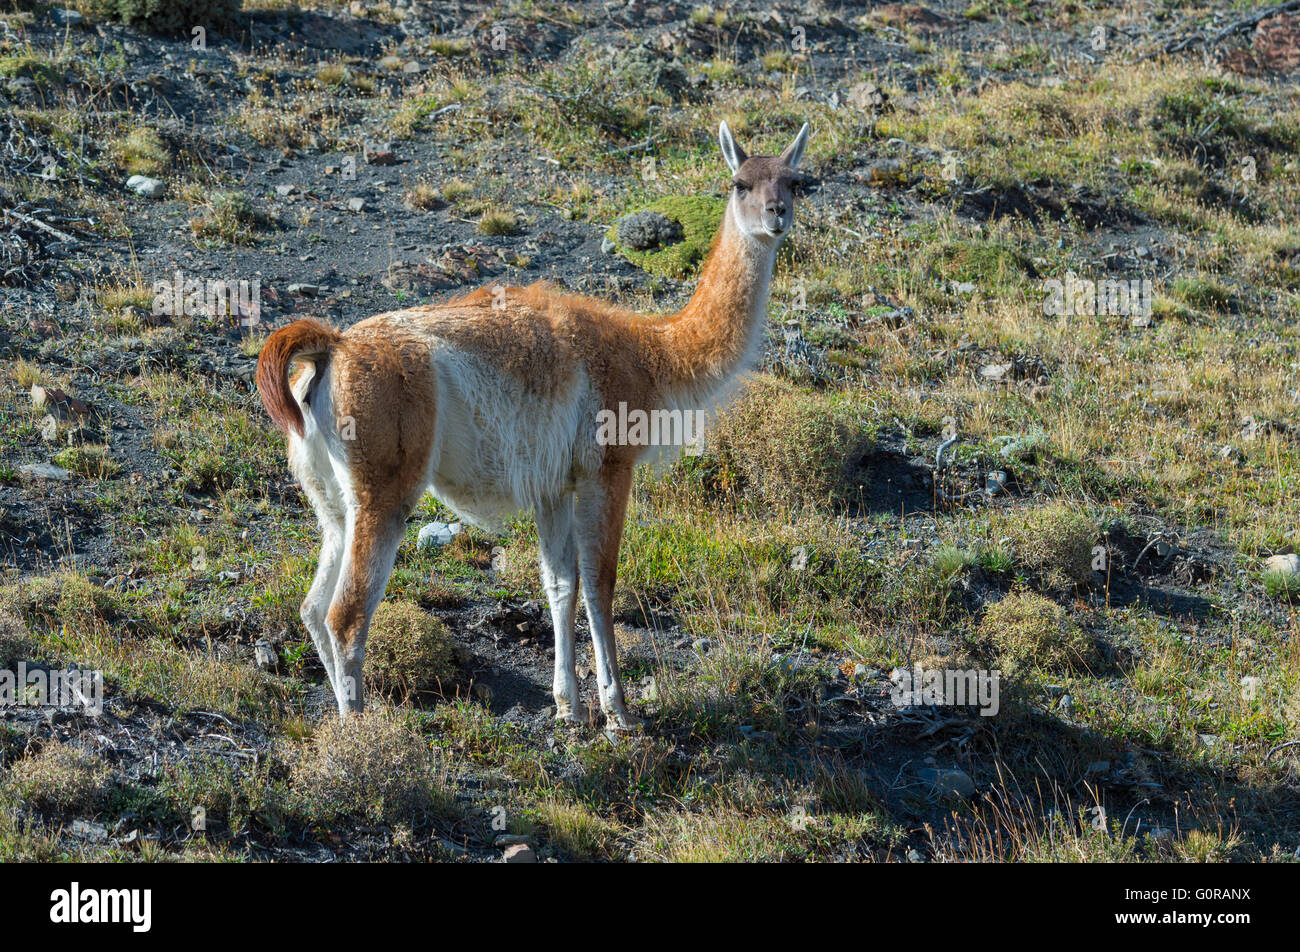 Guanaco (Lama guanicoe), Torres del Paine National Park, Chilean Patagonia, Chile - Stock Image